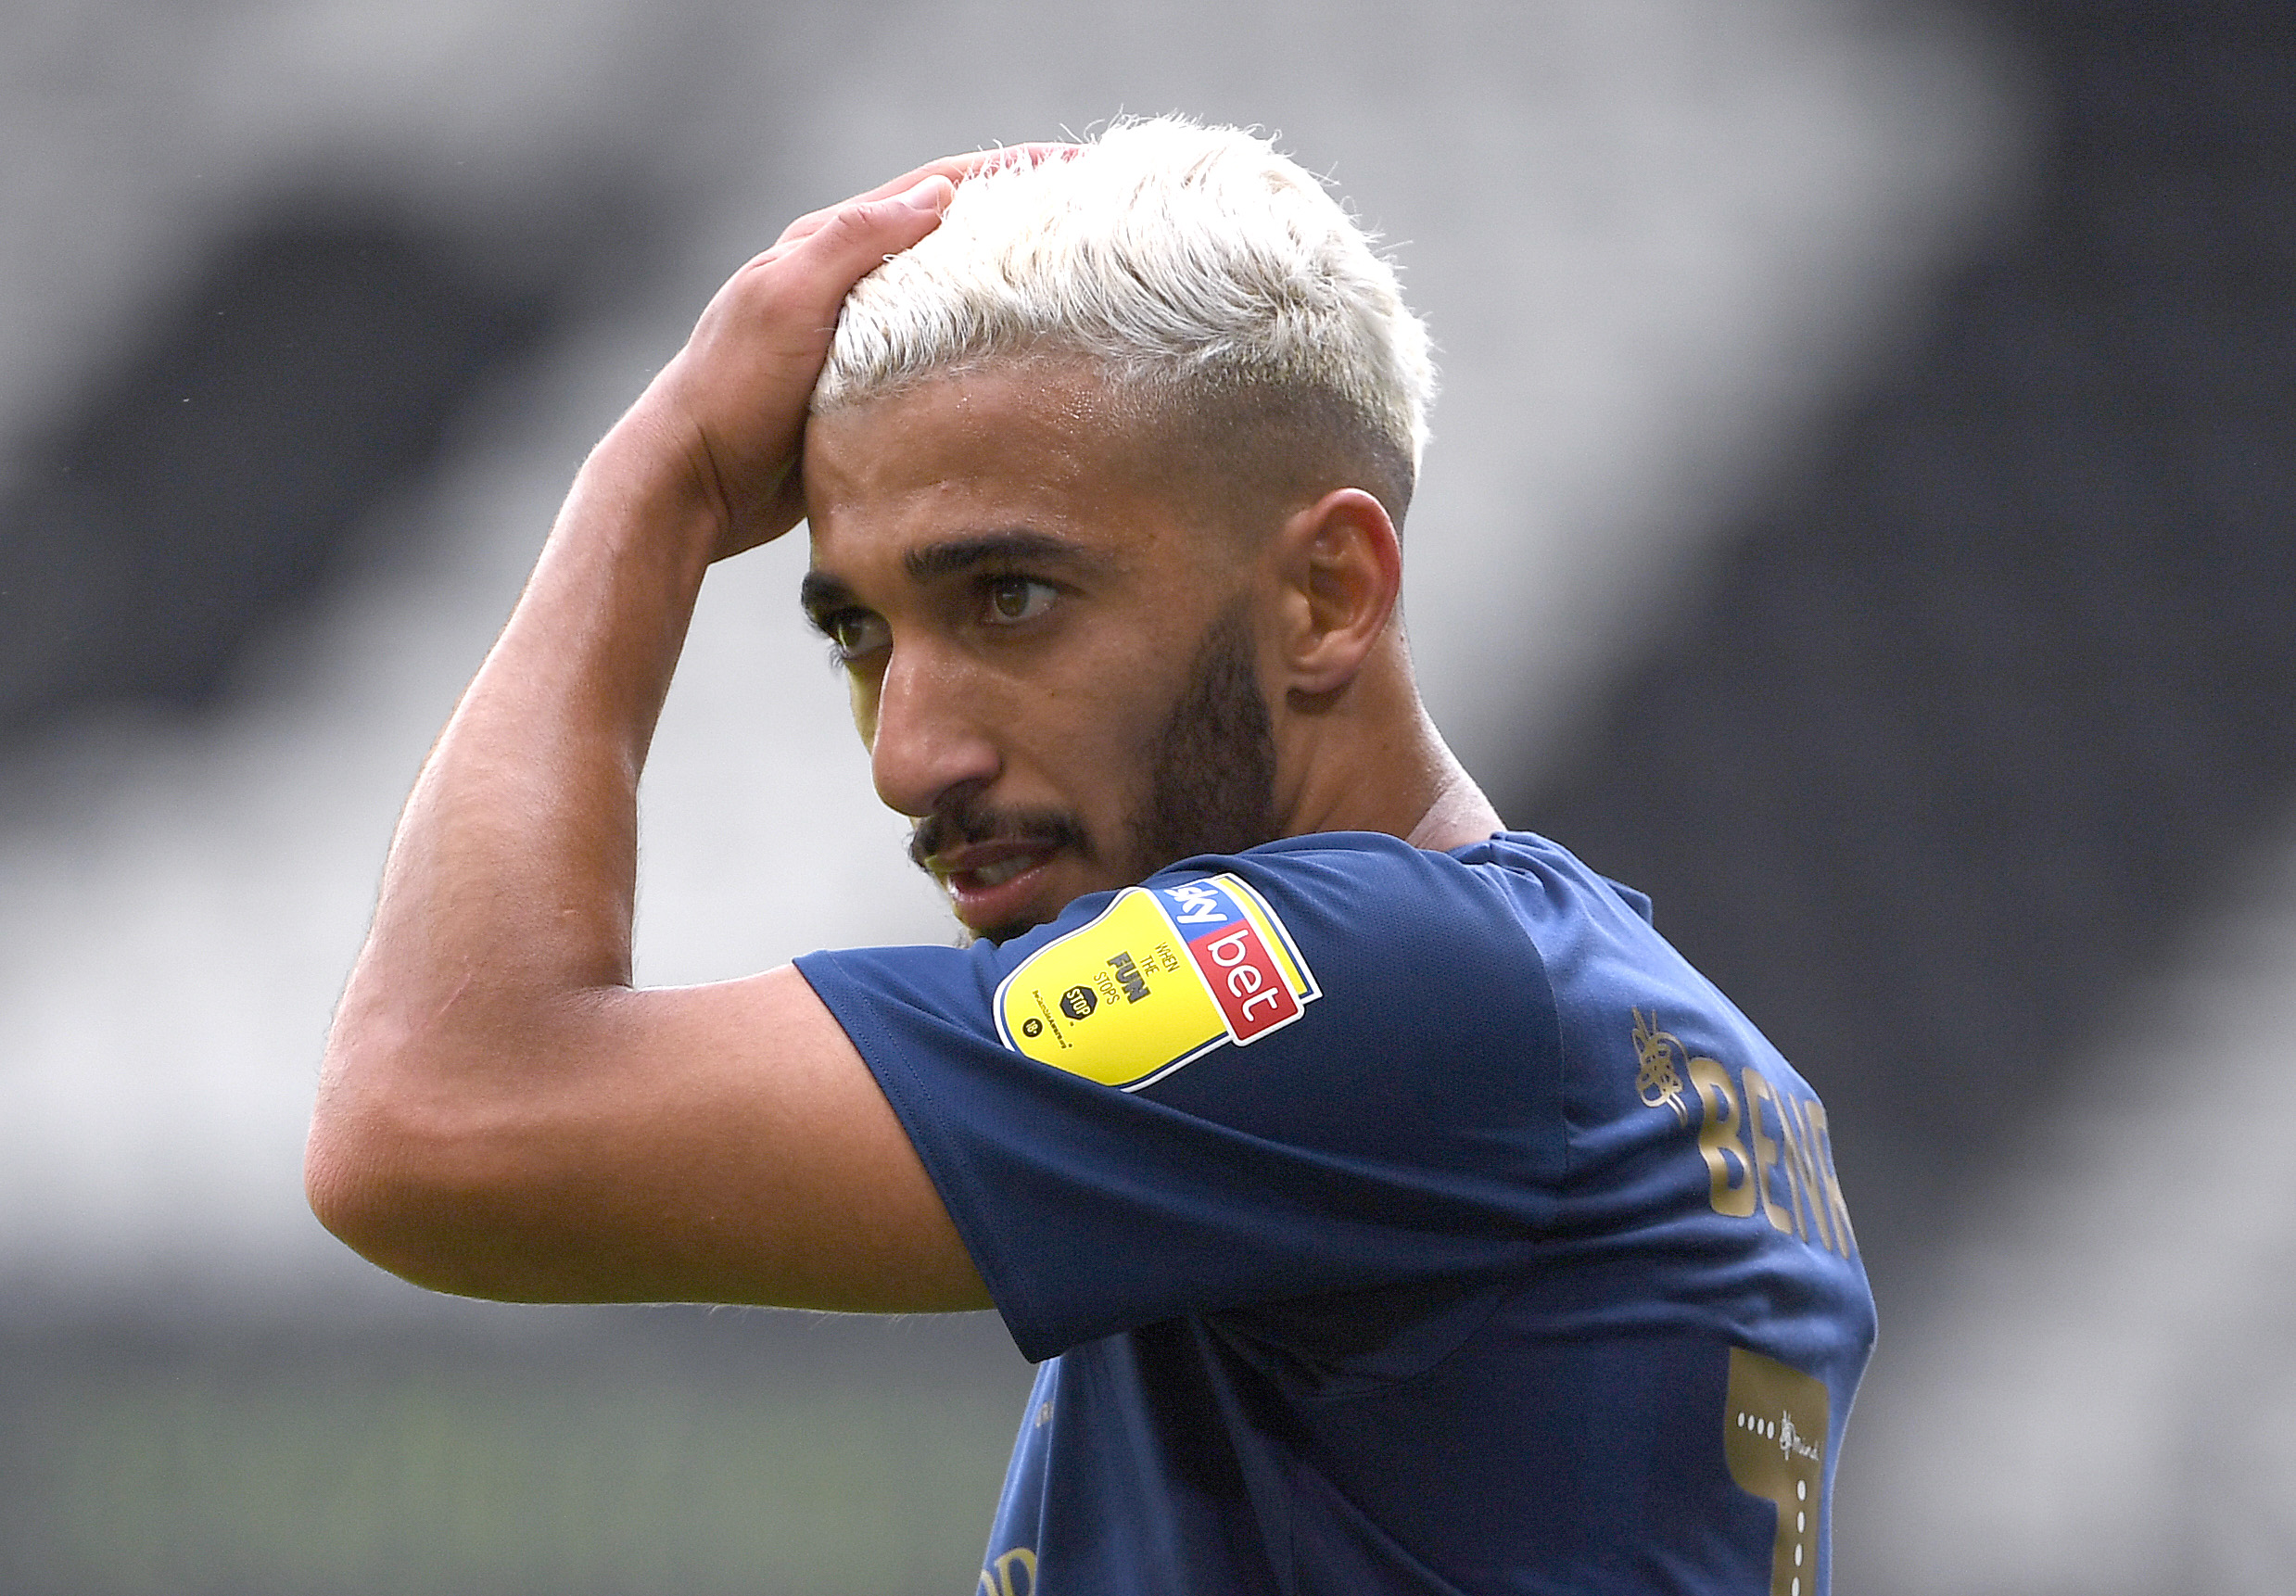 Leeds United are mulling over a move for Said Benrahma - A star player in the Championship.